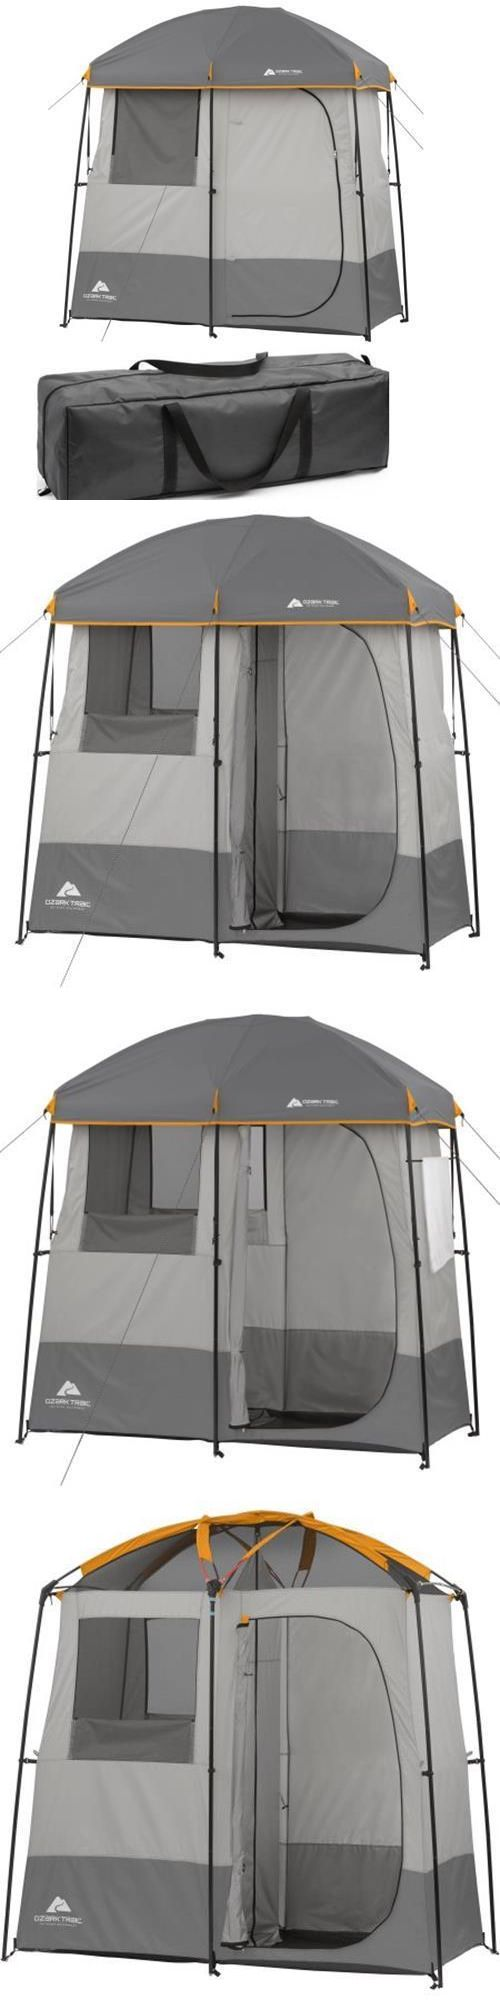 Tents 179010: Camping Shower Tent Outdoor Changing Room Privacy Pop Up Portable Toilet Tents -> BUY IT NOW ONLY: $79.95 on eBay! http://campingtentlover.com/best-camping-tent-review/